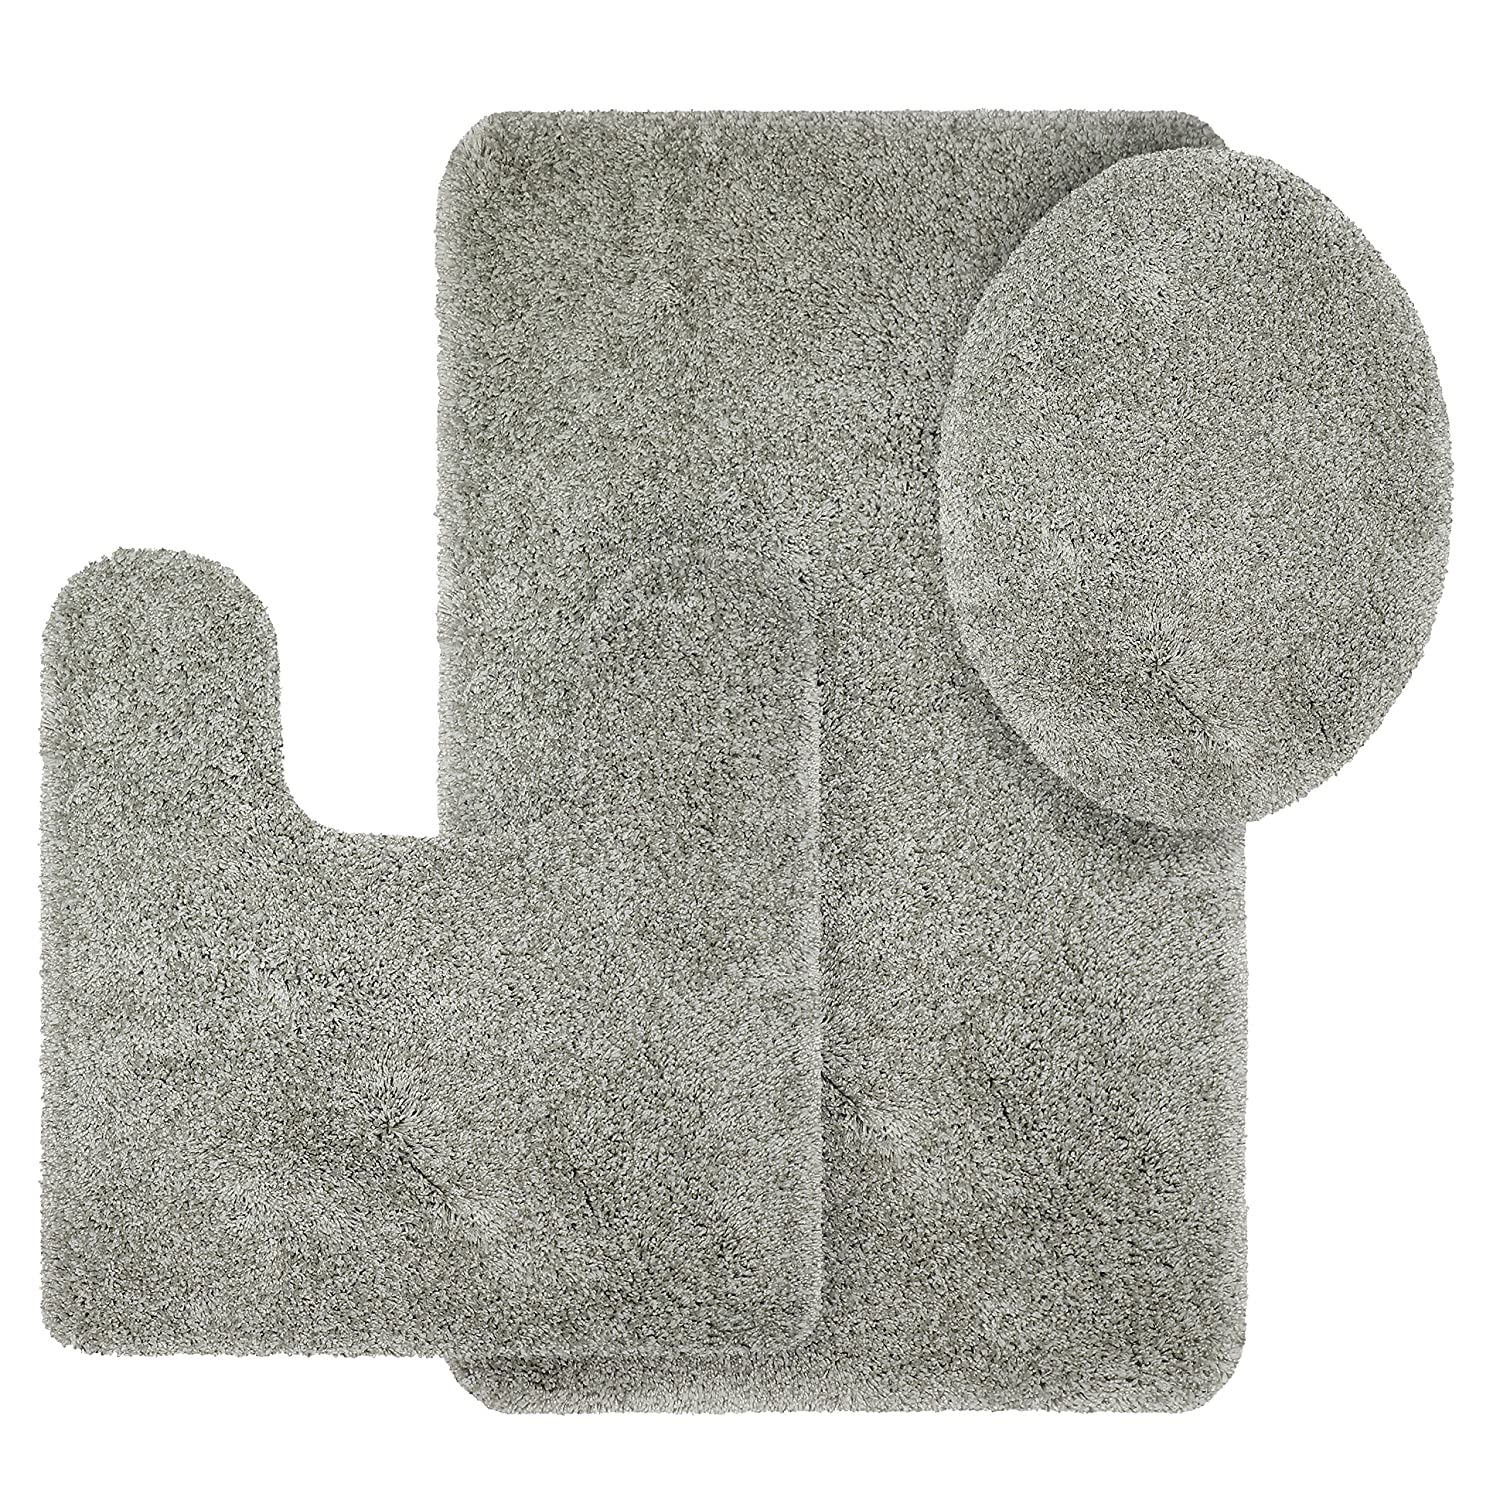 Better Homes and Gardens Thick and Plush 3-Piece Bath Rug Set, Soft Silver